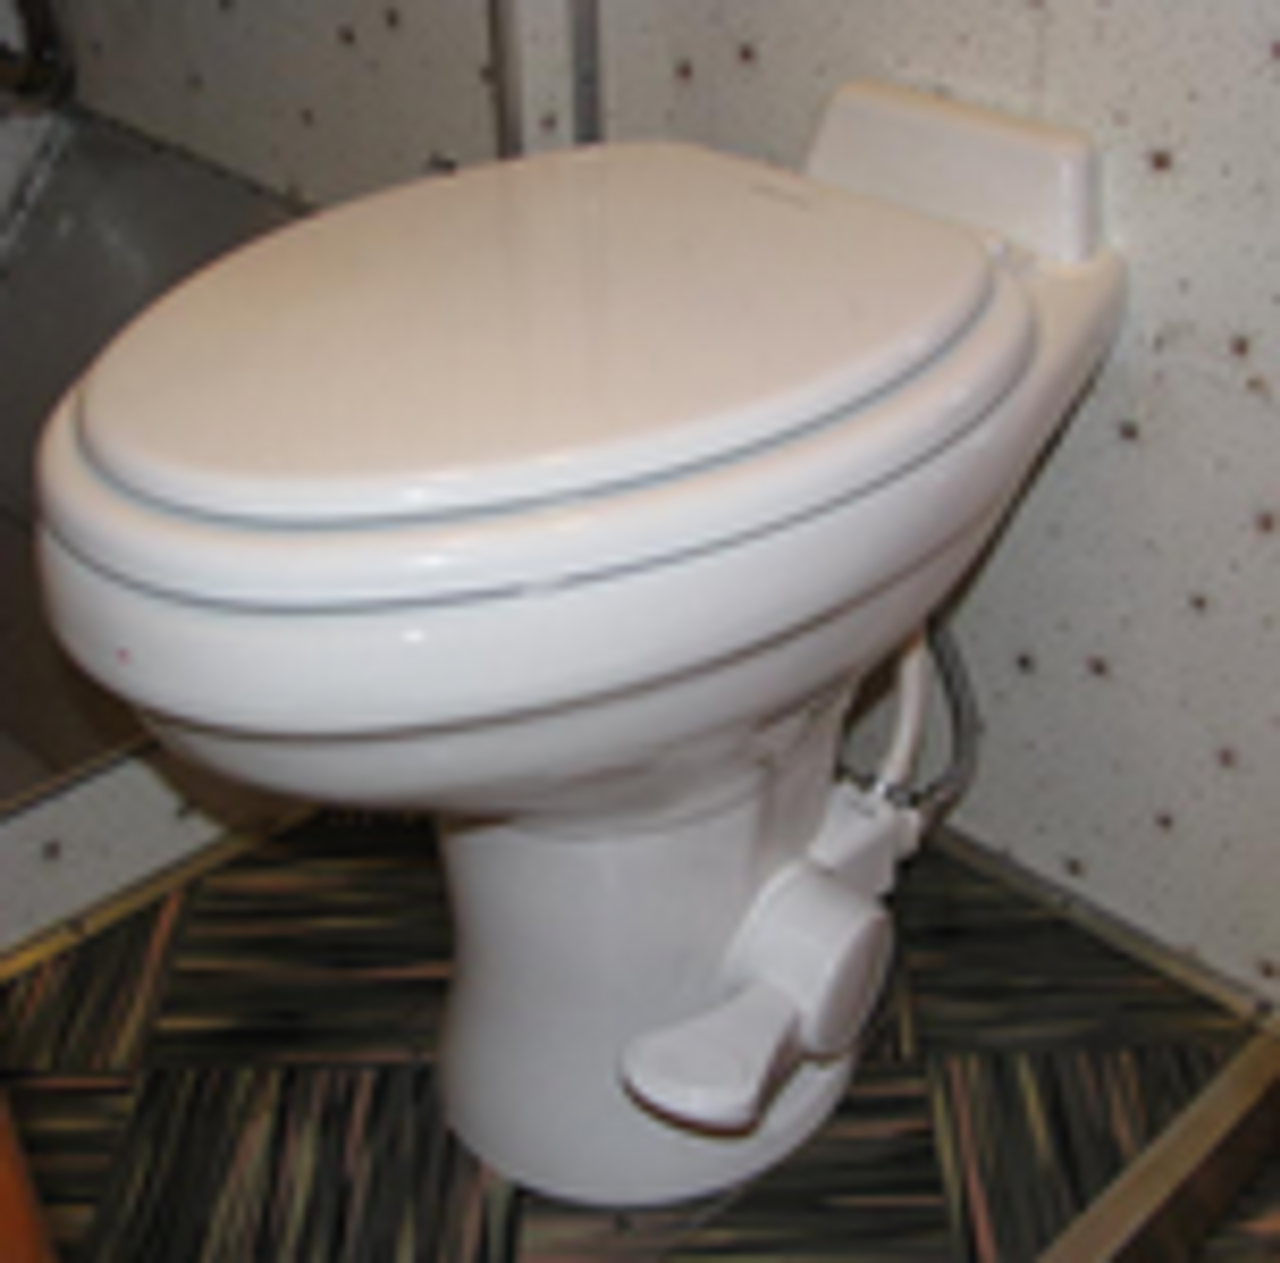 Dometic 310 Toilet White with Sprayer (12-4003)